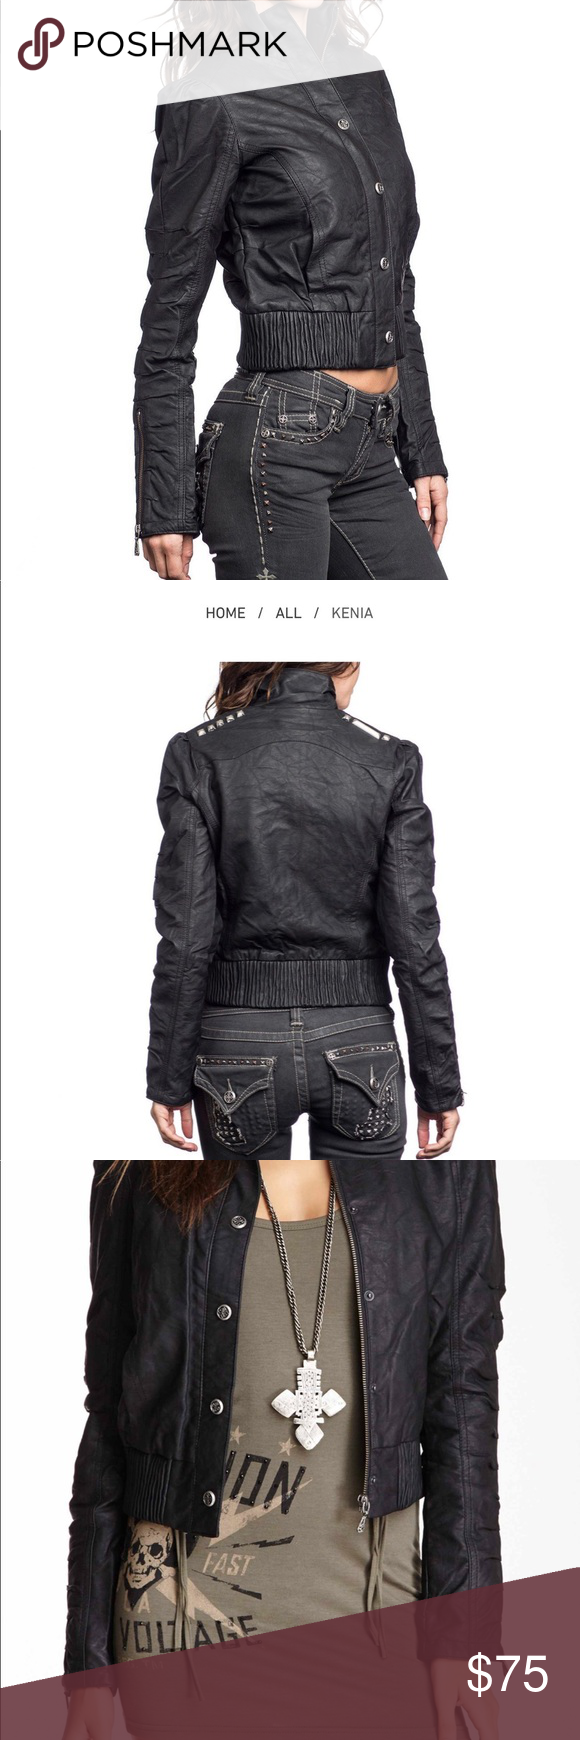 Women's Affliction faux leather jacket Leather jacket